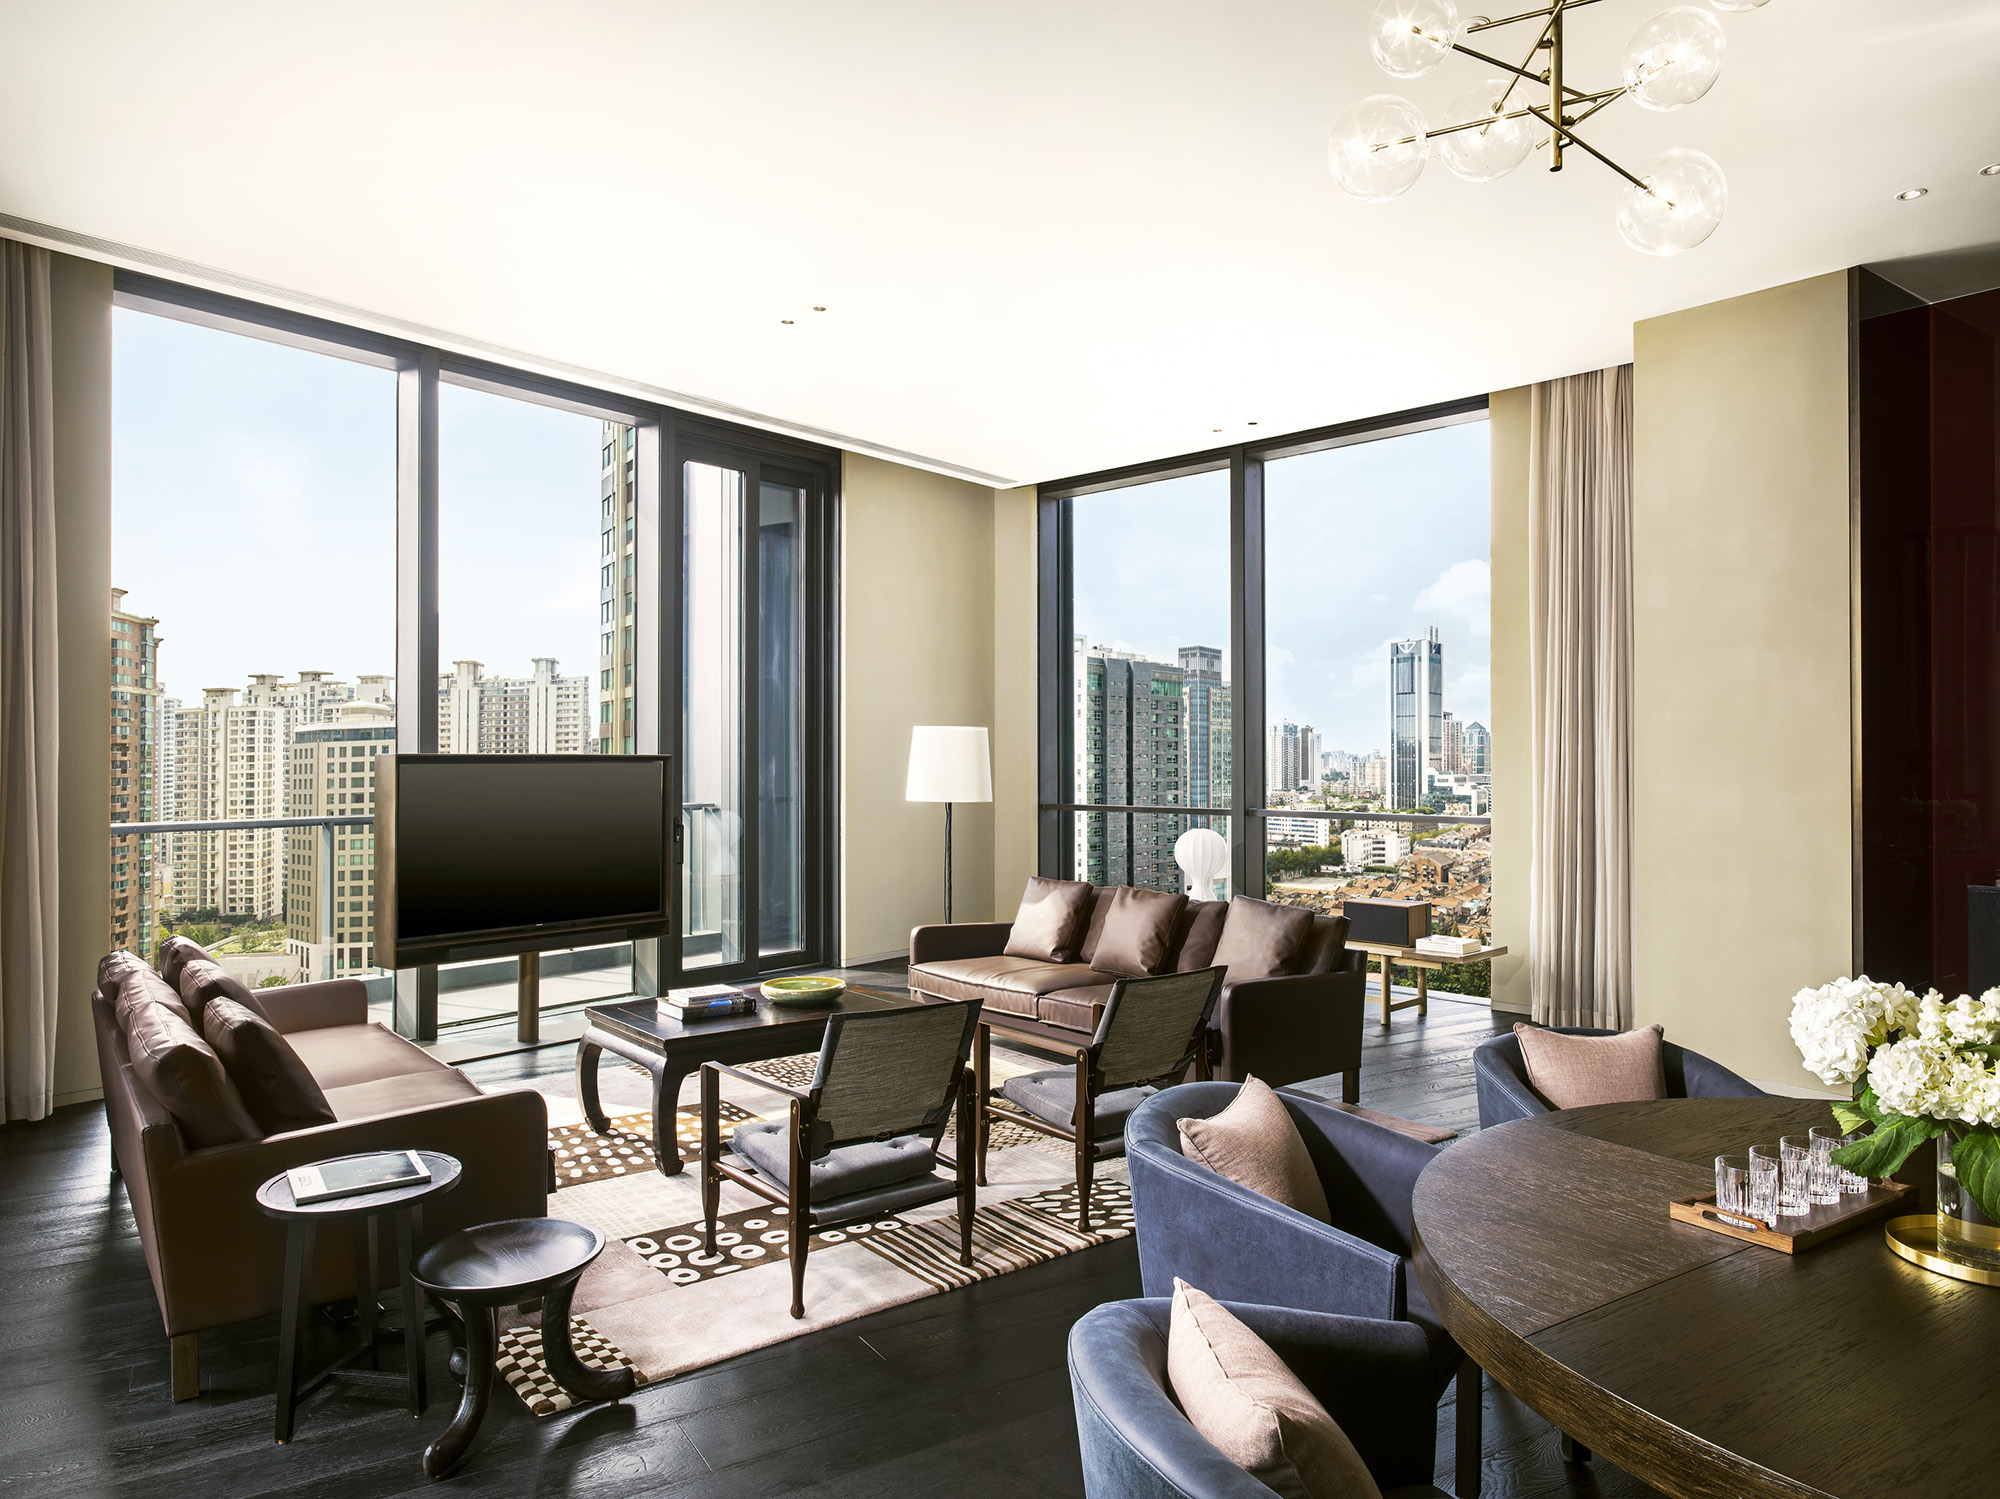 The Middle House is one of Asia's most luxurious penthouse